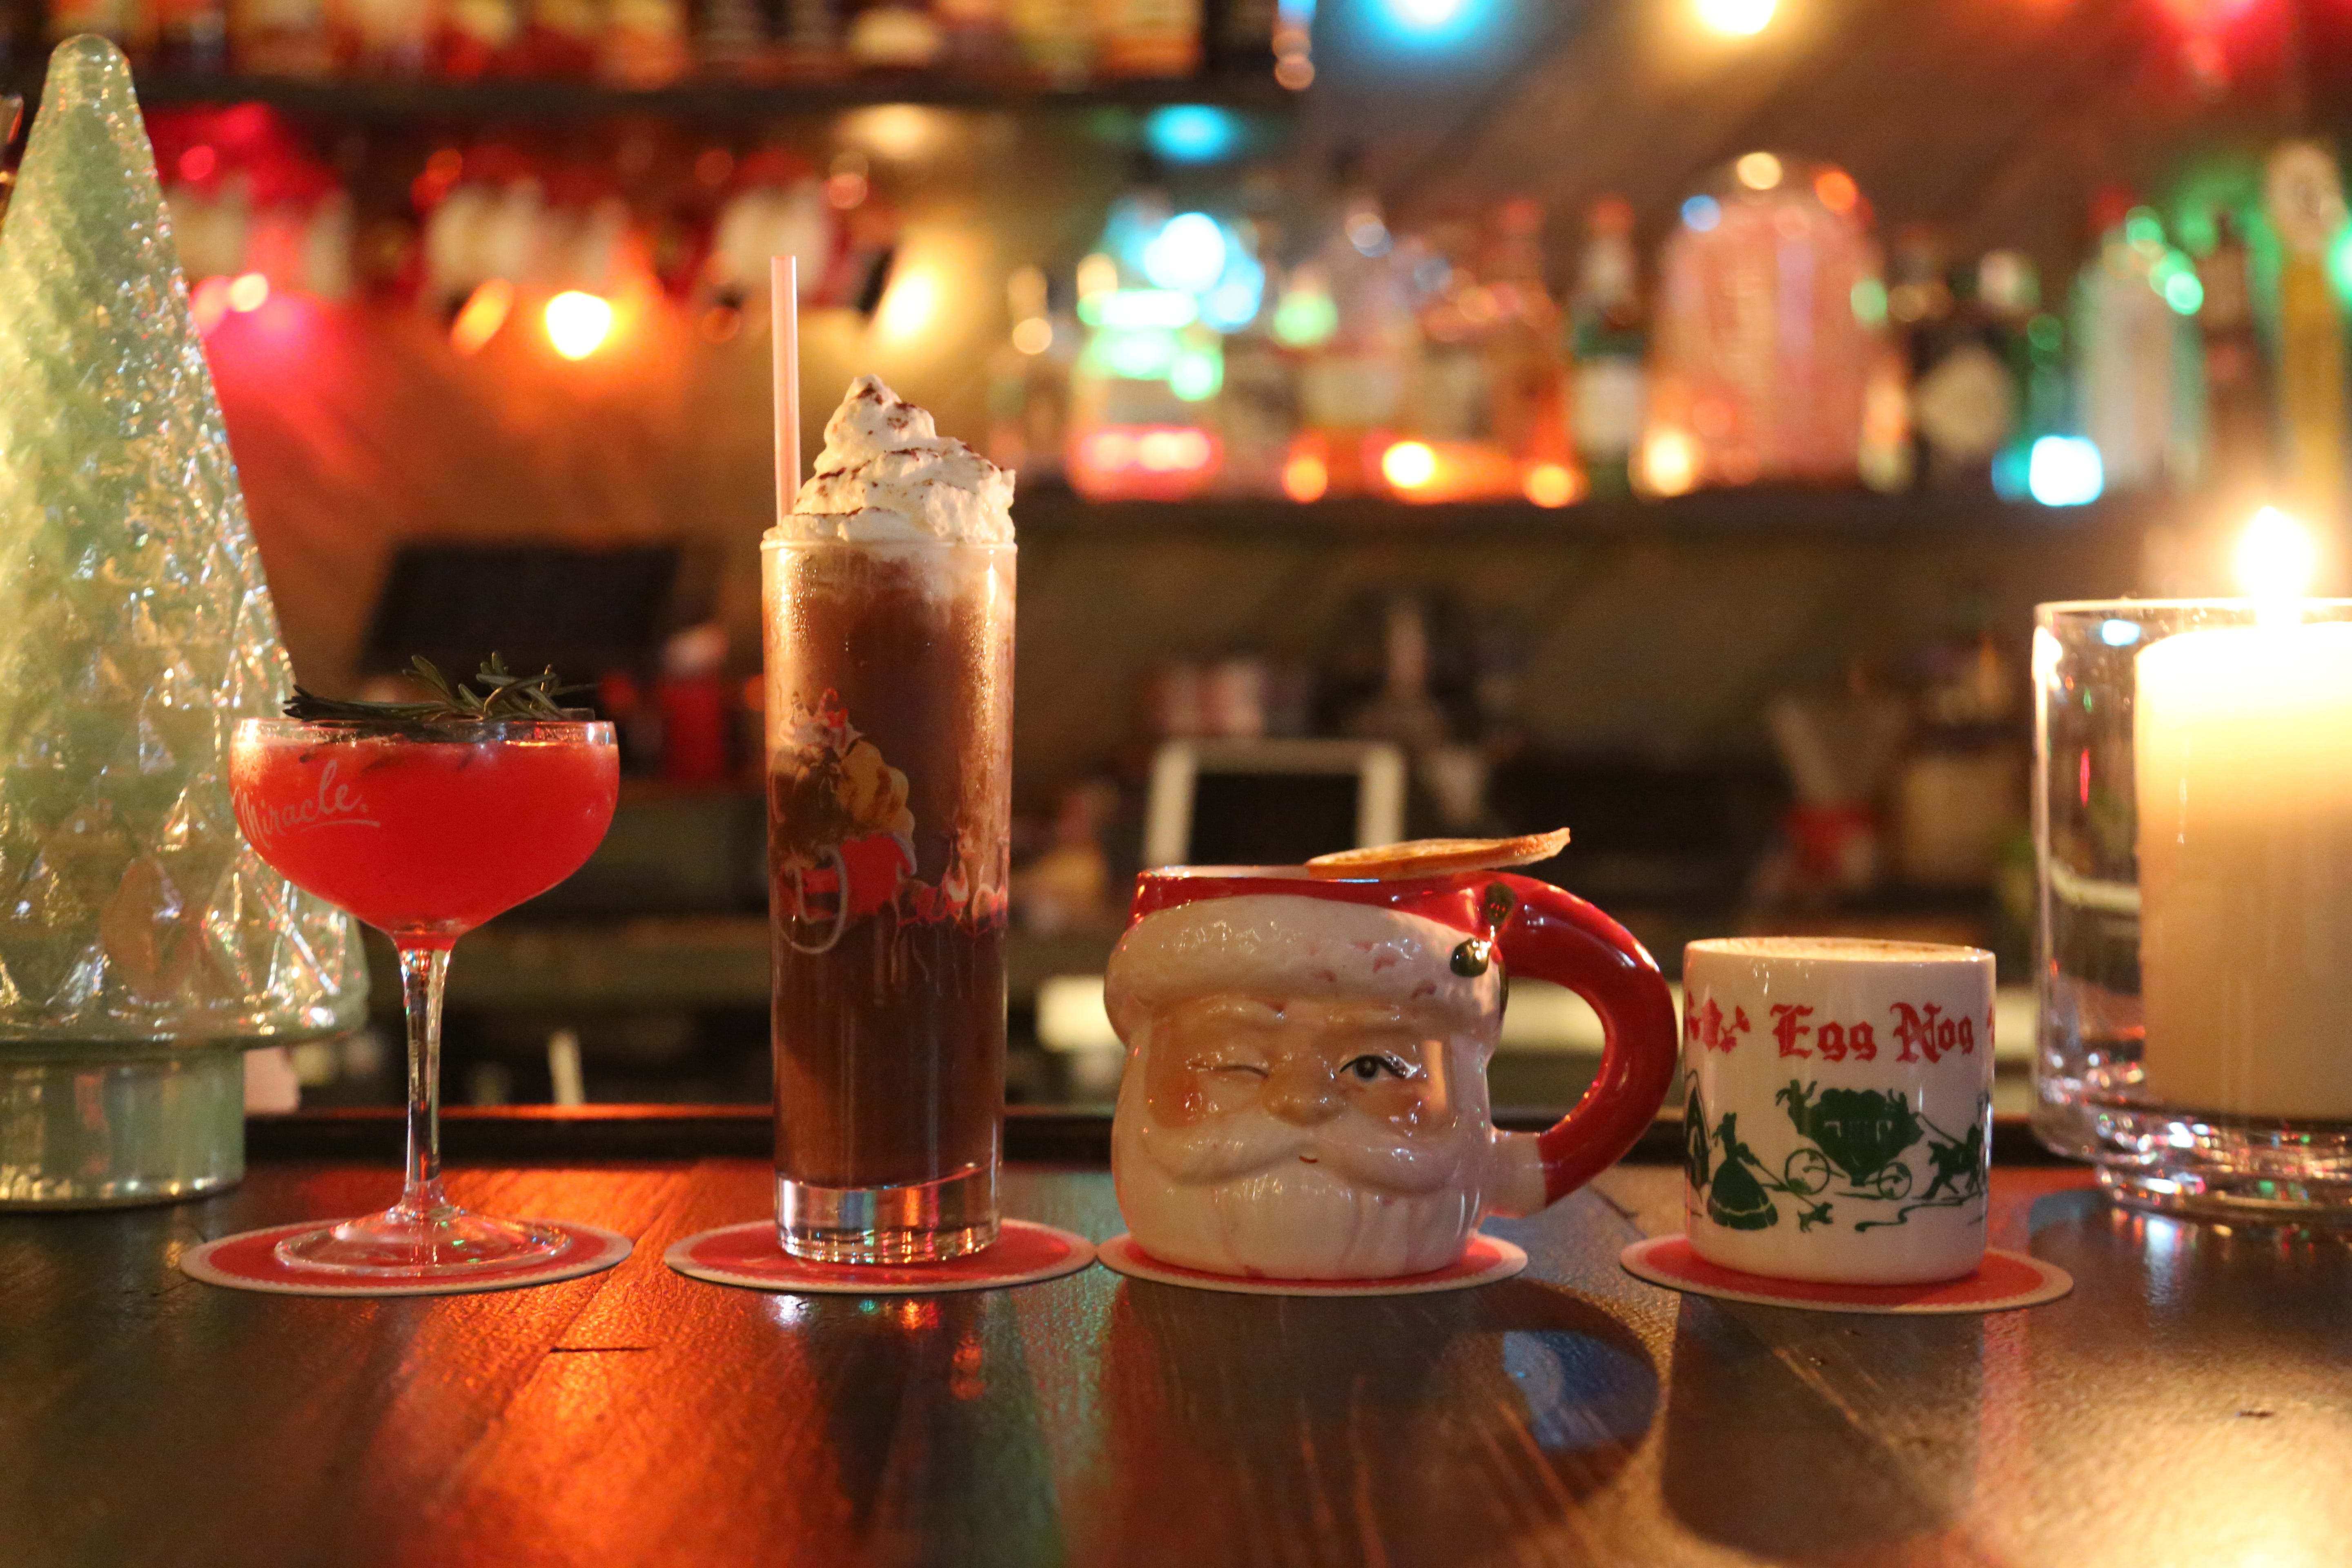 Cocktails come in kitschy Christmas-themed glasses